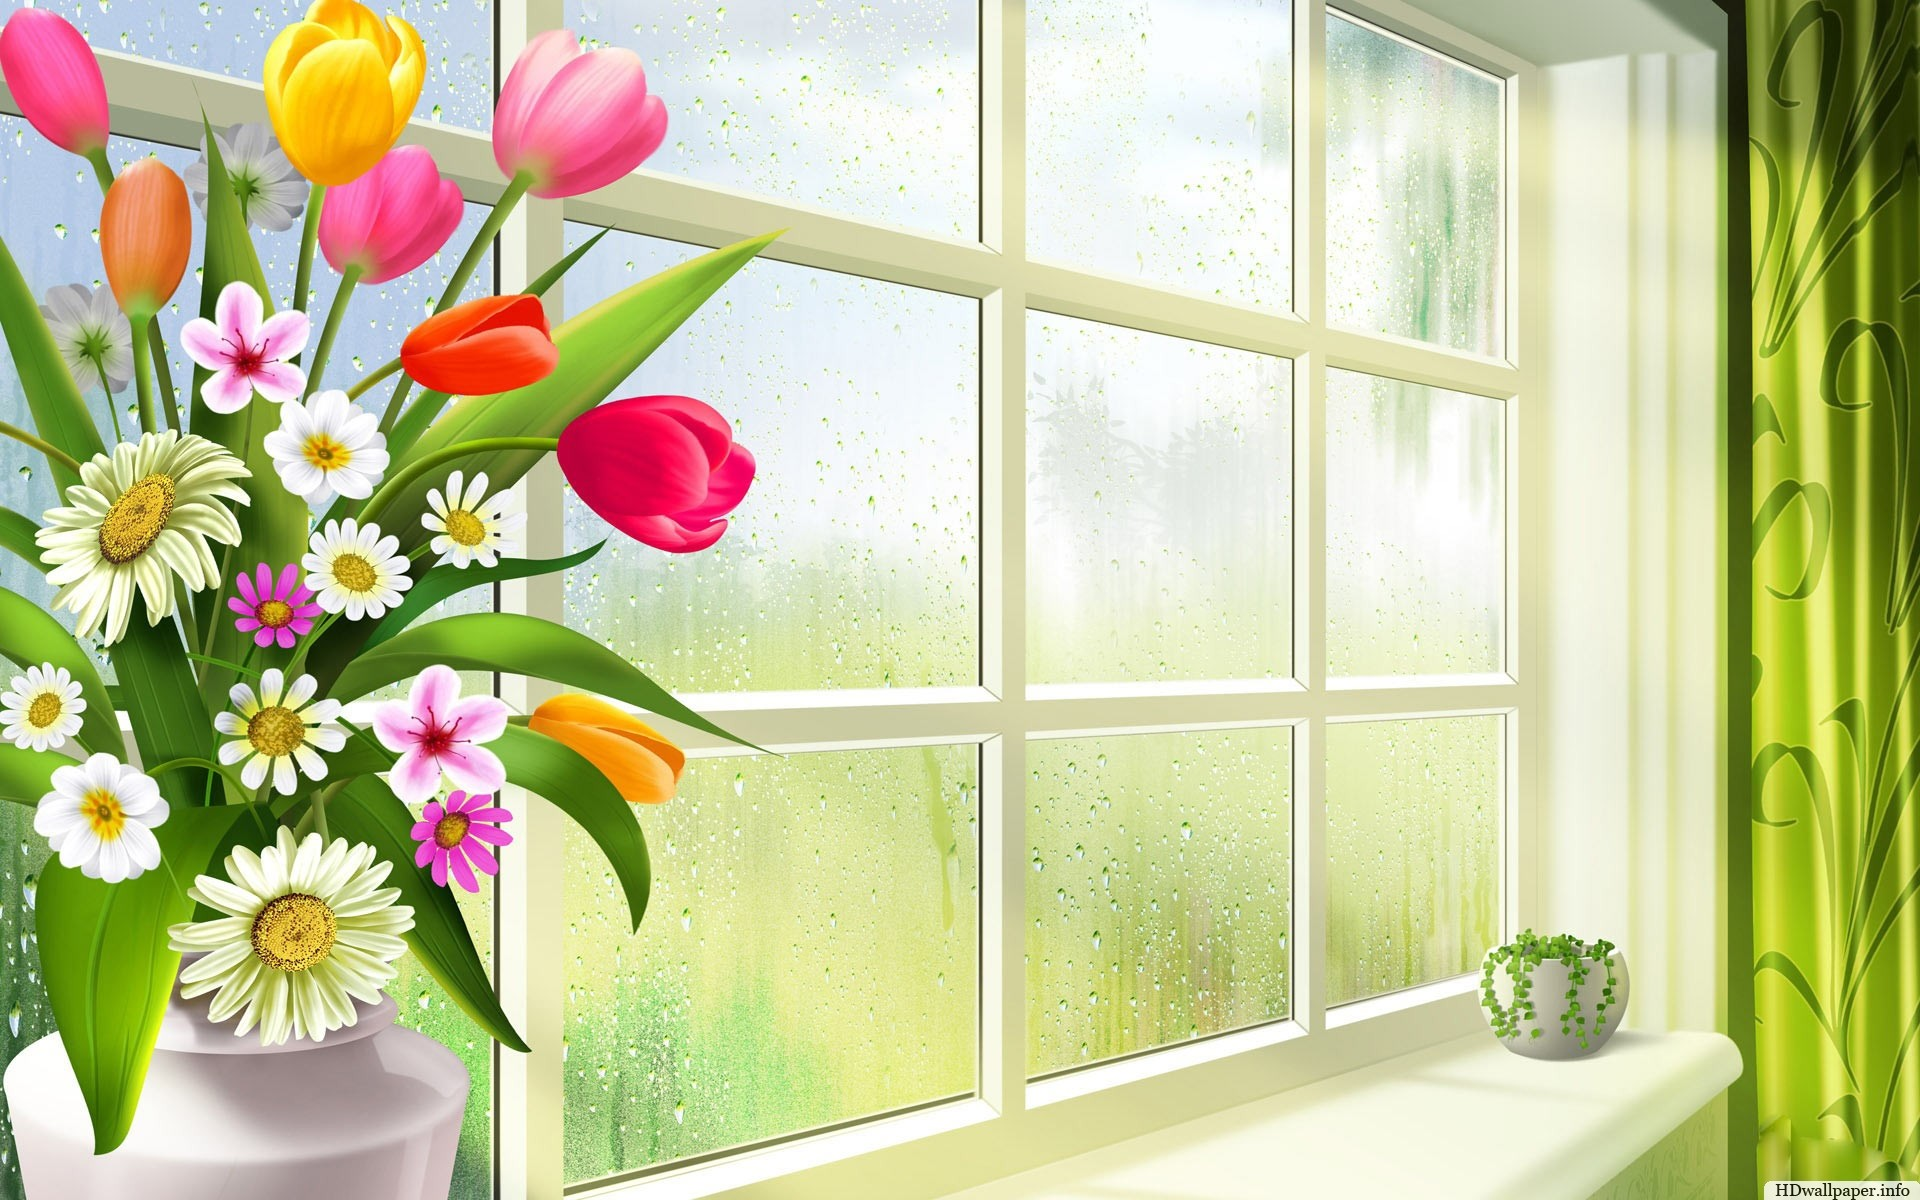 1920x1200 spring desktop backgrounds - http://hdwallpaper.info/spring-desktop-